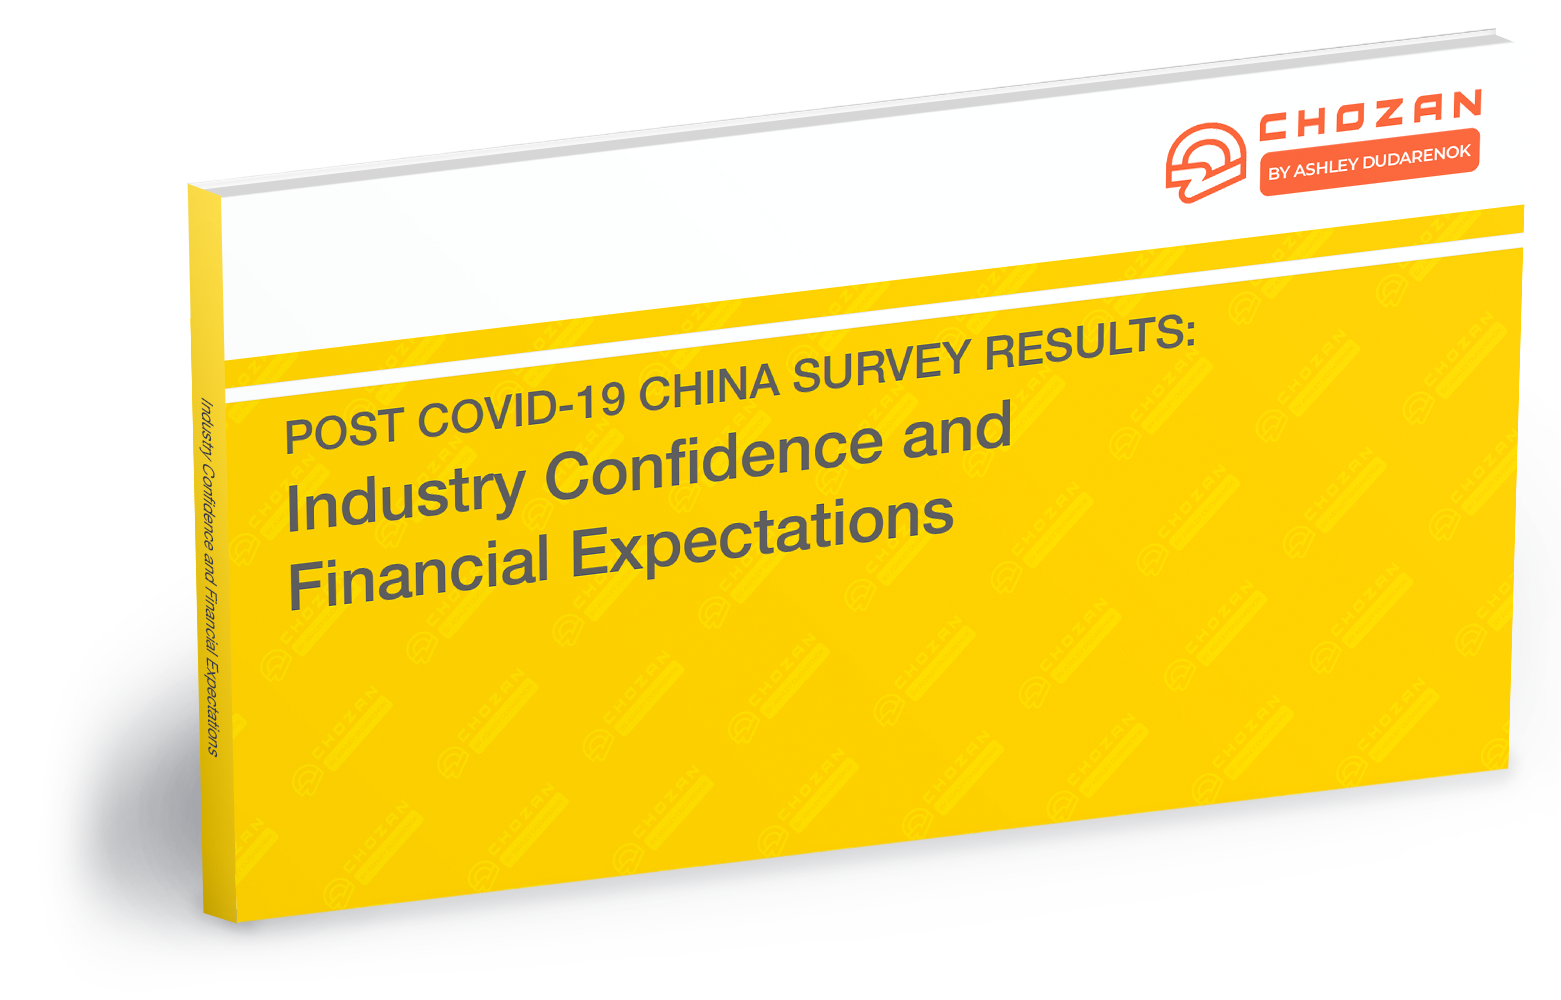 Post covid survey industry confidence financial expectation